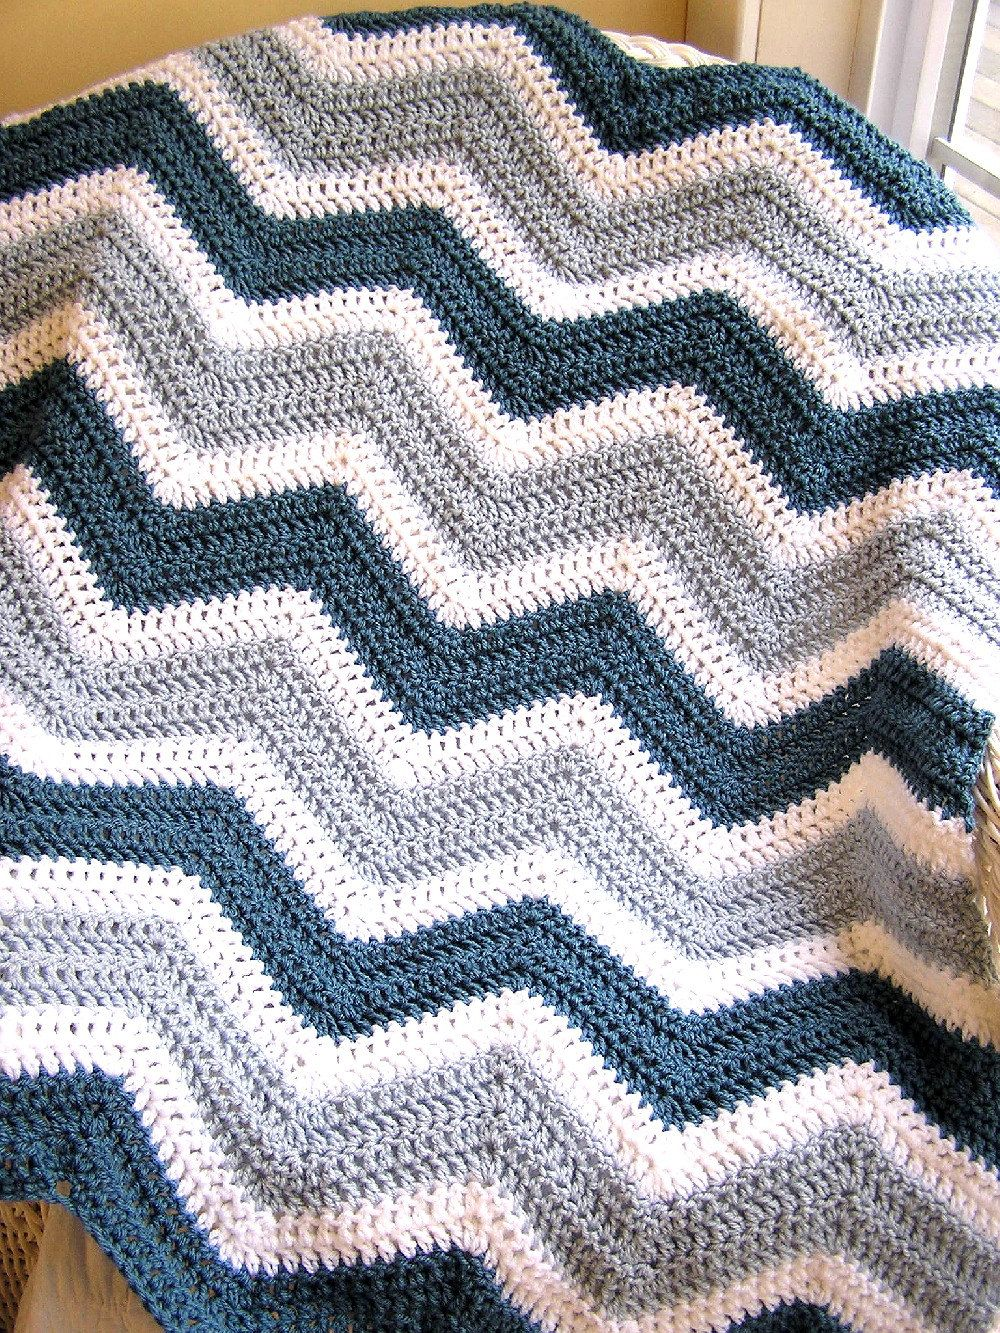 Chevron zig zag crochet baby toddler afghan blanket wrap lap robe chevron zig zag crochet baby toddler afghan blanket wrap lap robe wheelchair ripple stripes vanna white bankloansurffo Image collections